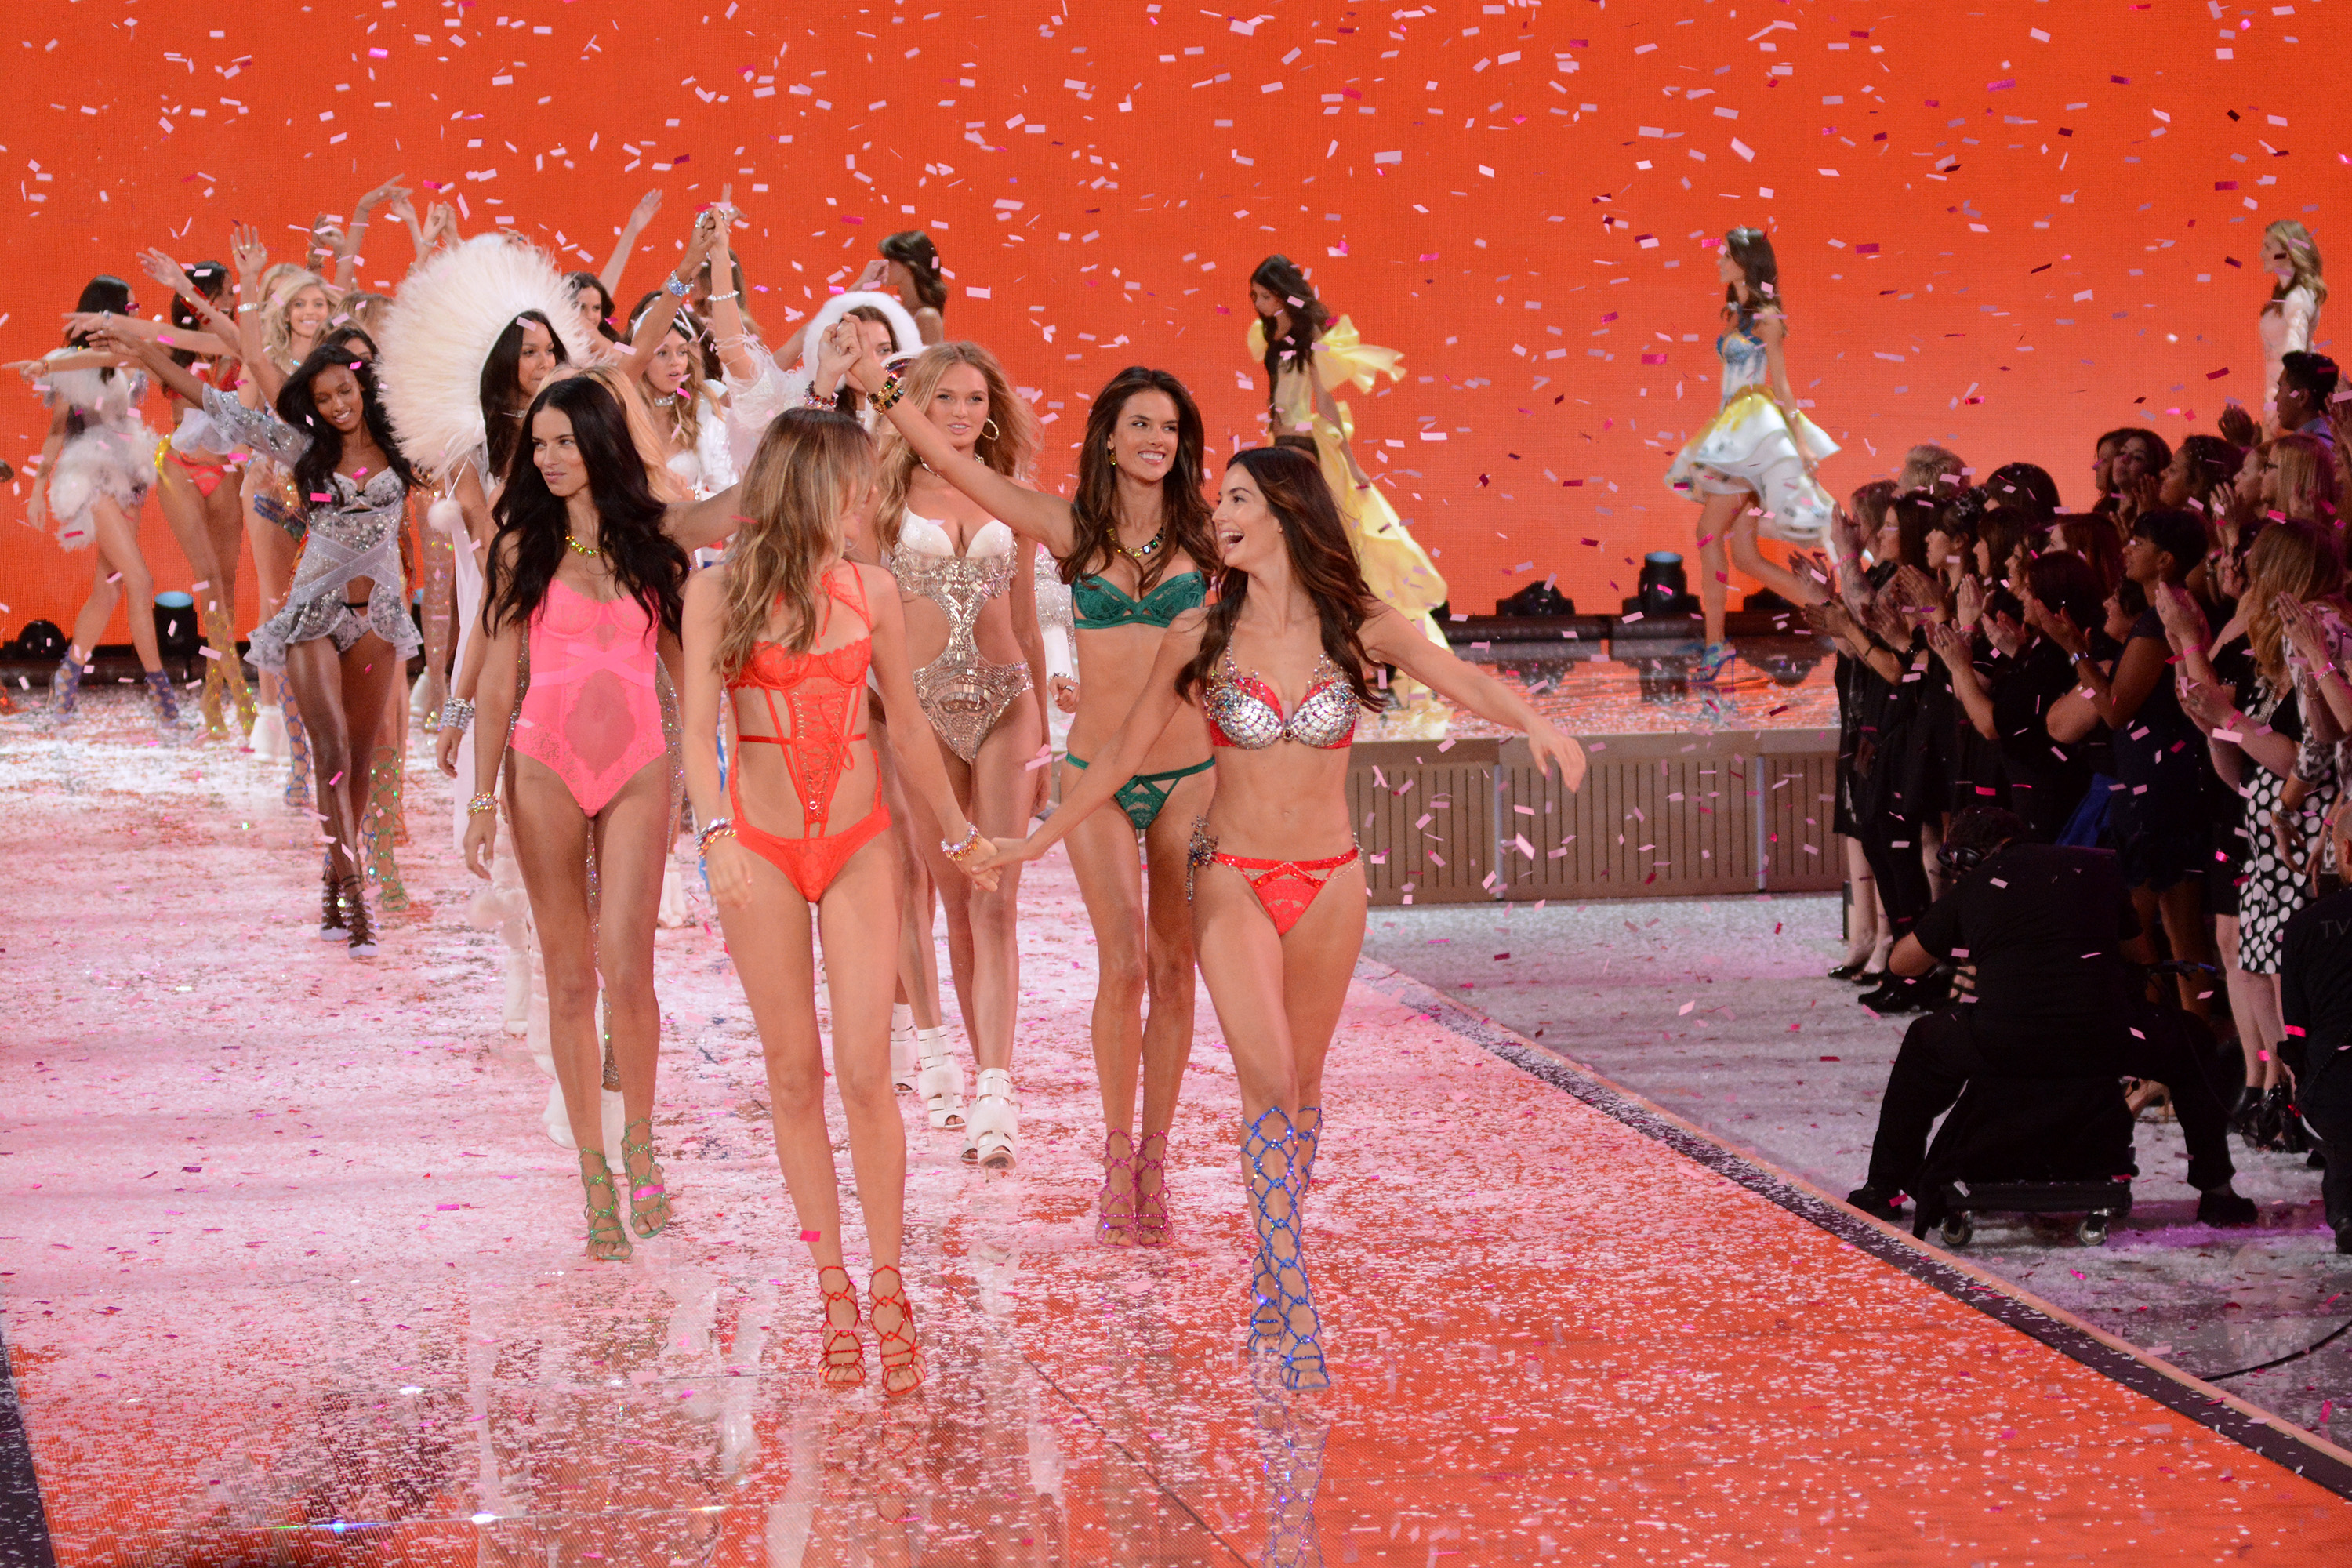 2015 Victoria's Secret Fashion Show - Runway  Featuring: Adriana Lima, Behati Prinsloo, Lily Aldridge, Alessandra Ambrosio Where: Queens, New York, United States When: 11 Nov 2015 Credit: Ivan Nikolov/WENN.com